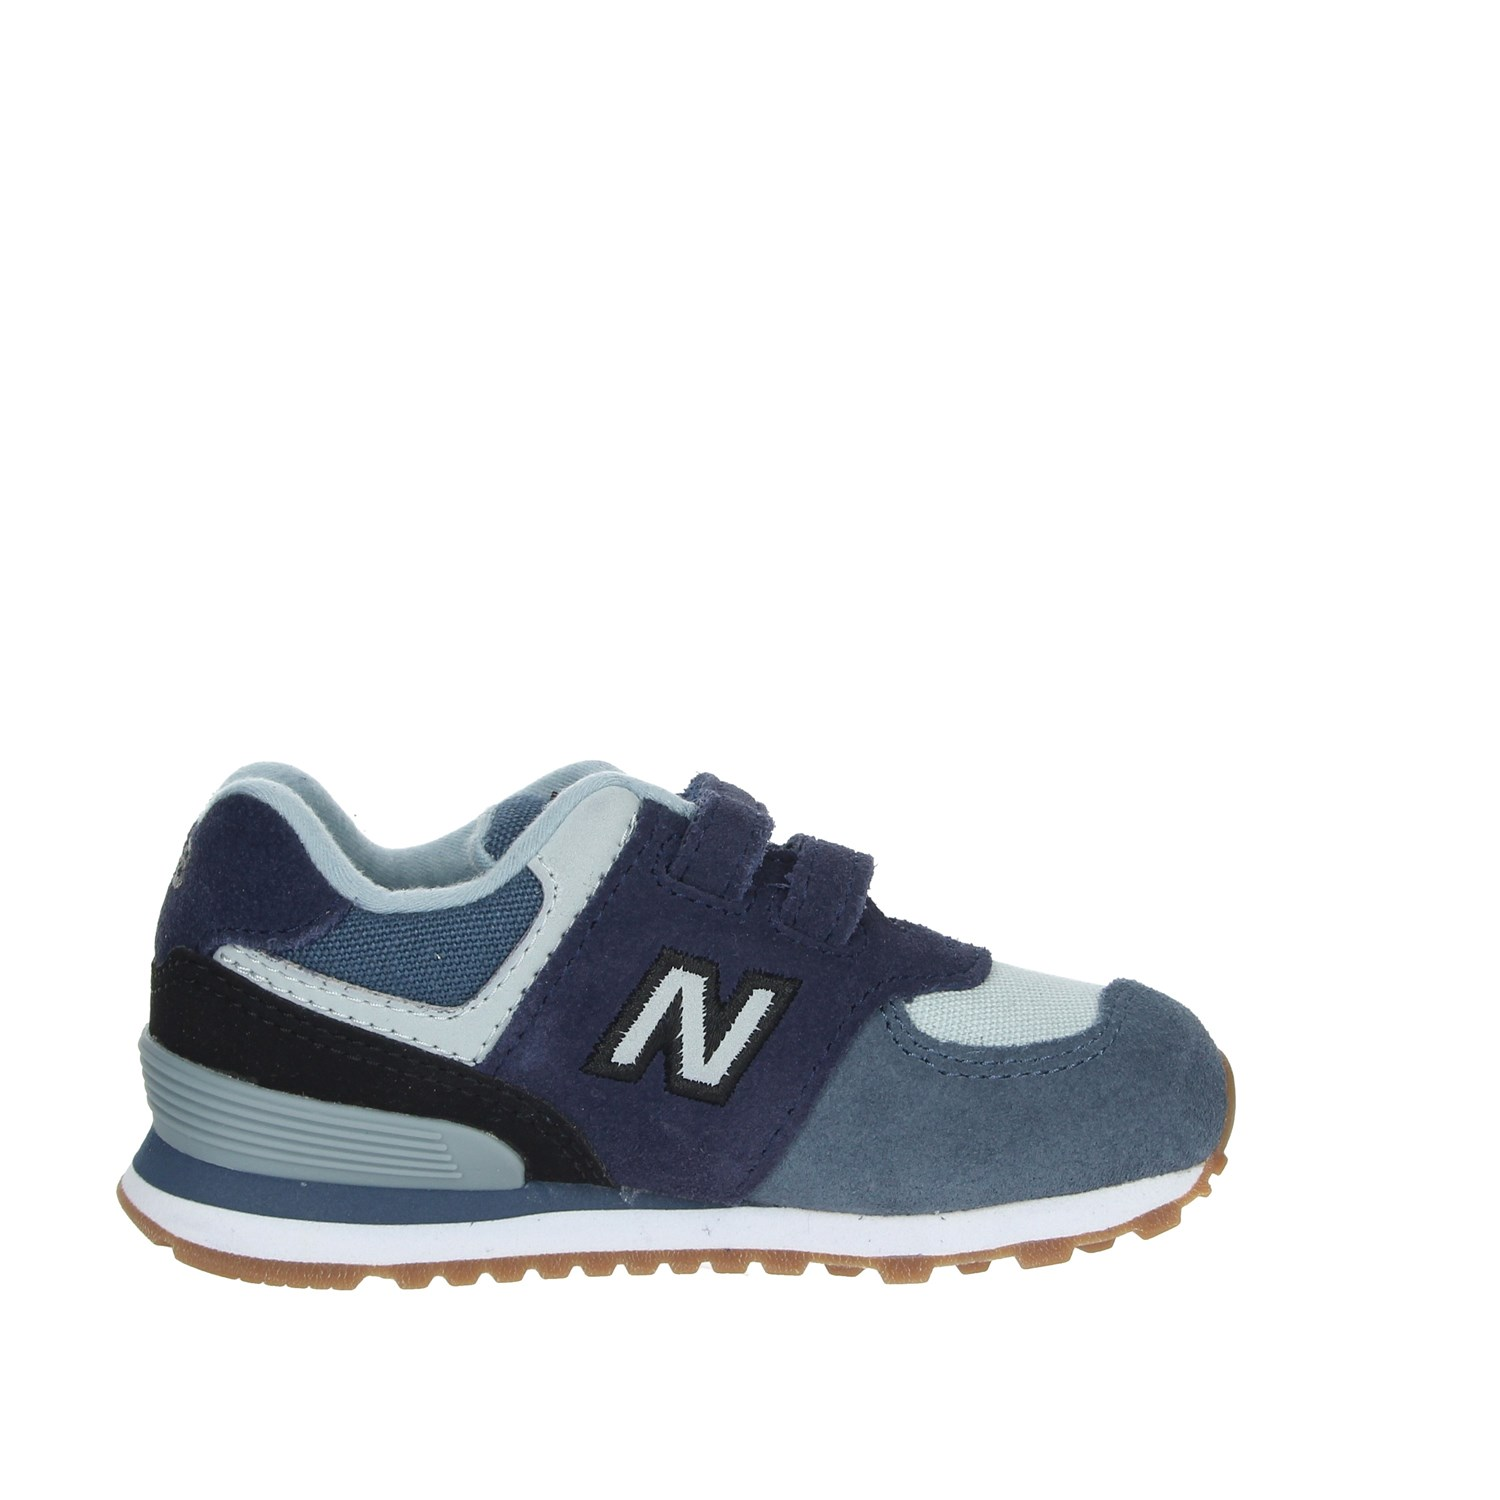 new balance bambini primavera estate